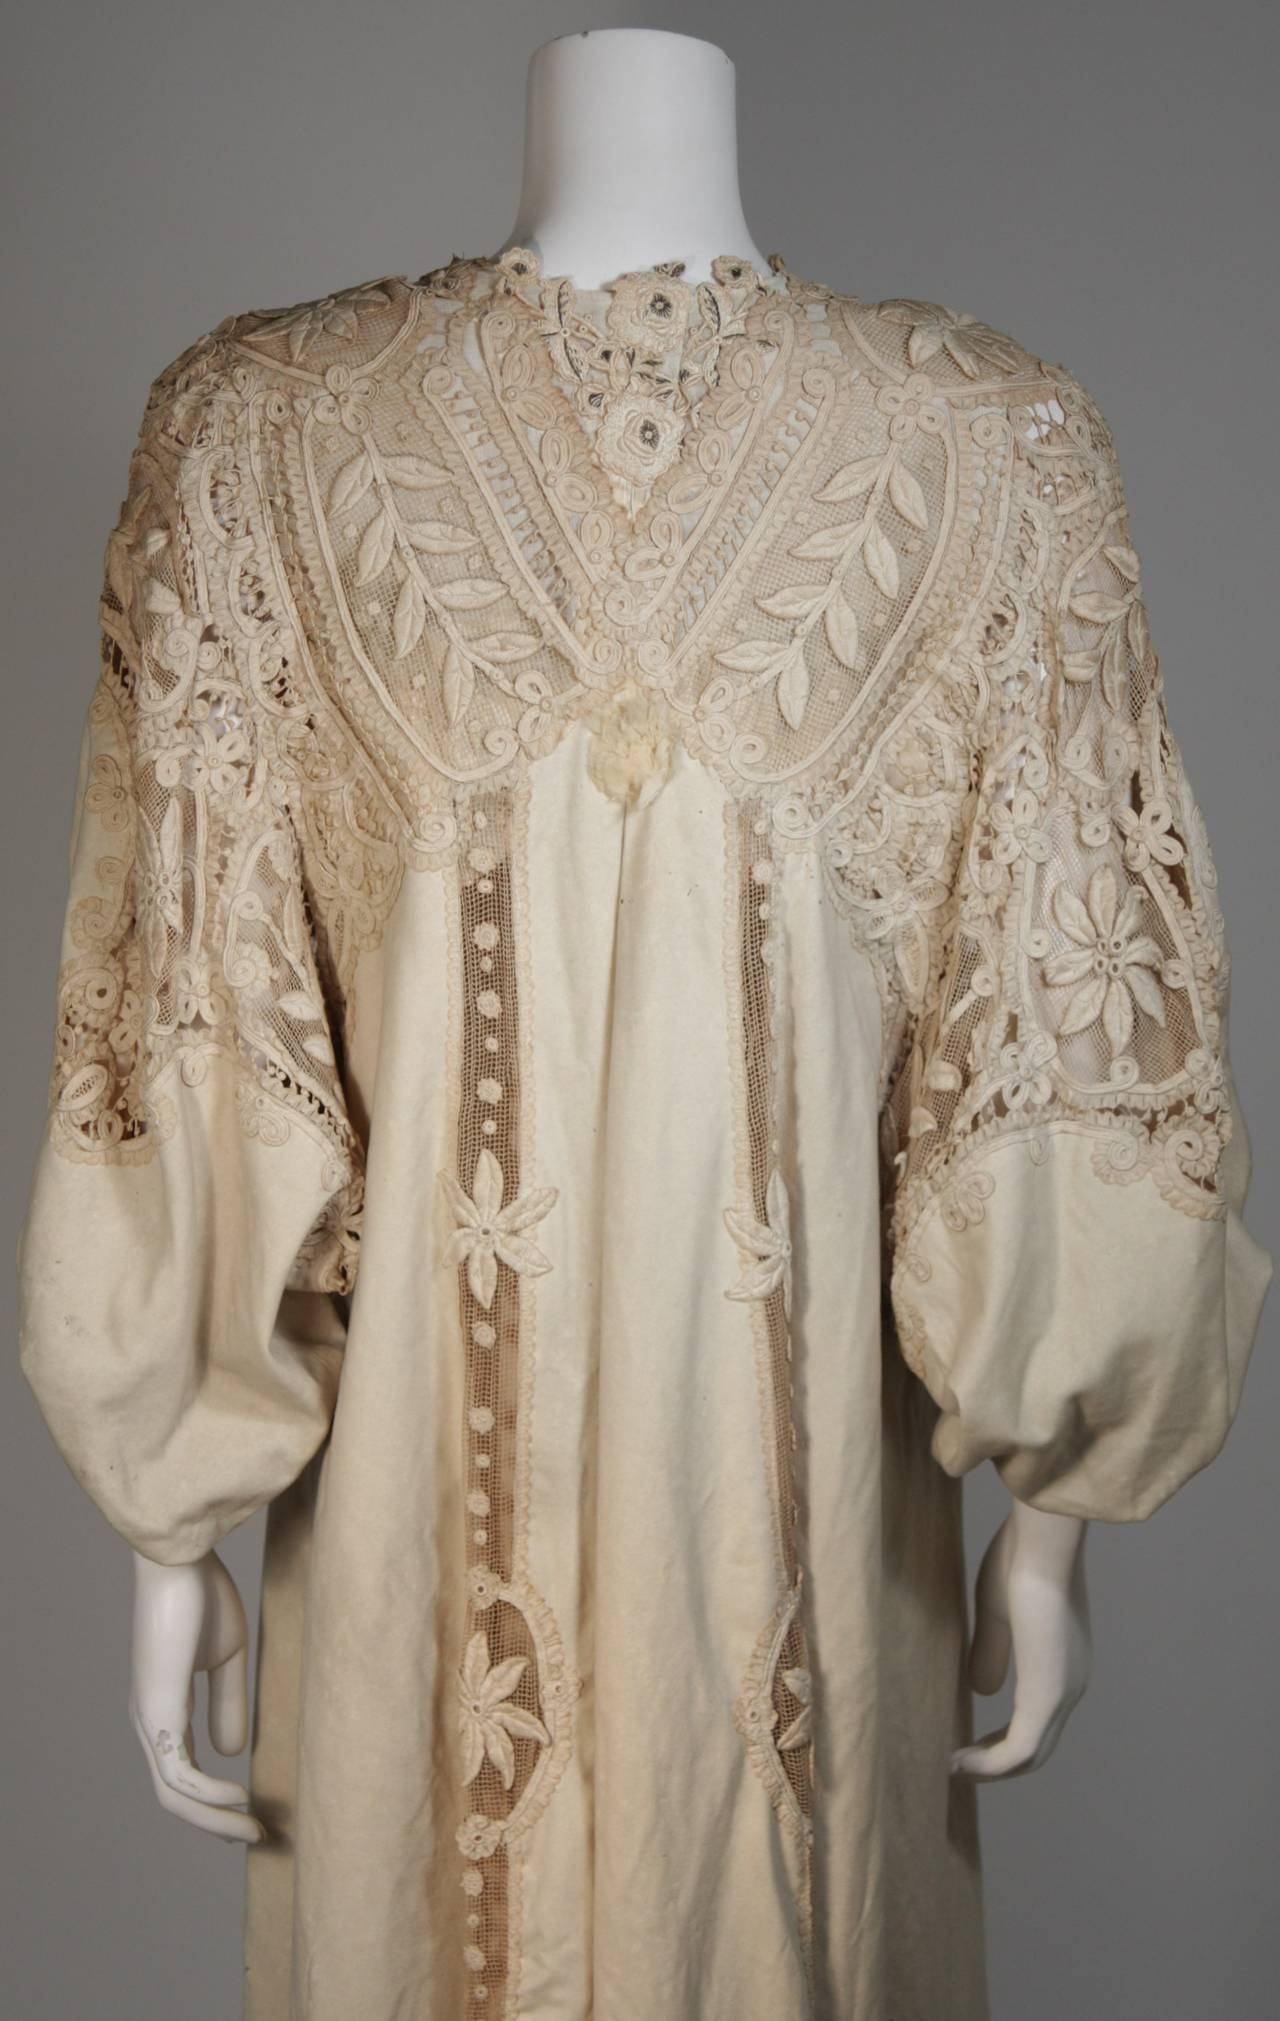 Antique Lace Coat with Bell Sleeve Detail For Sale 3